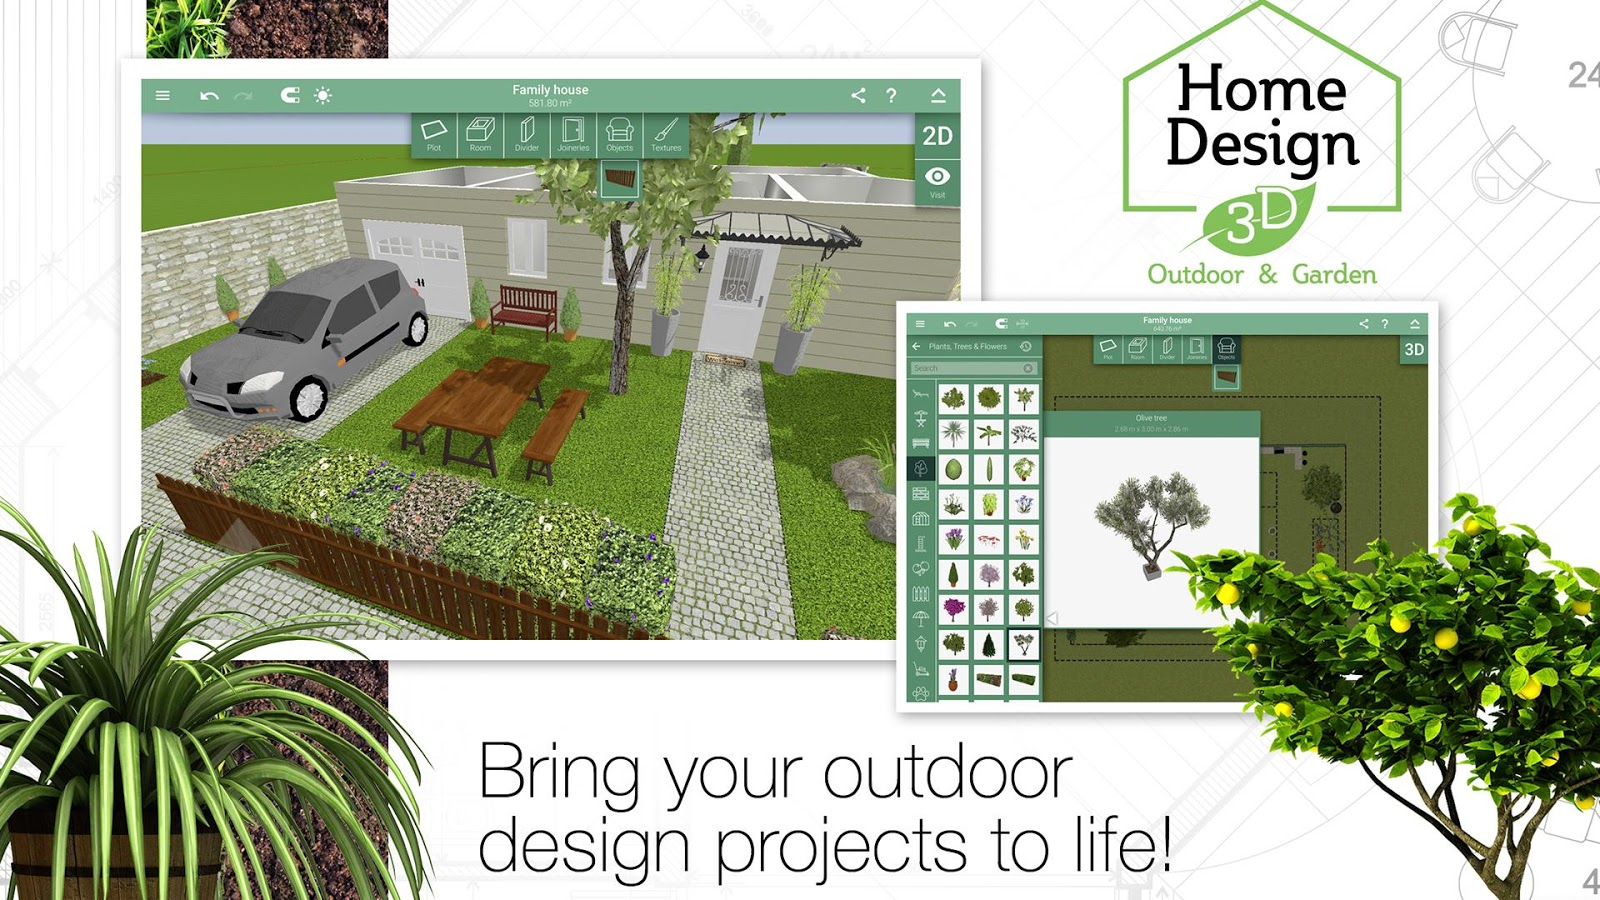 Home Garden Design Software Image Home Design 3D Outdoorgarden  Android Apps On Google Play